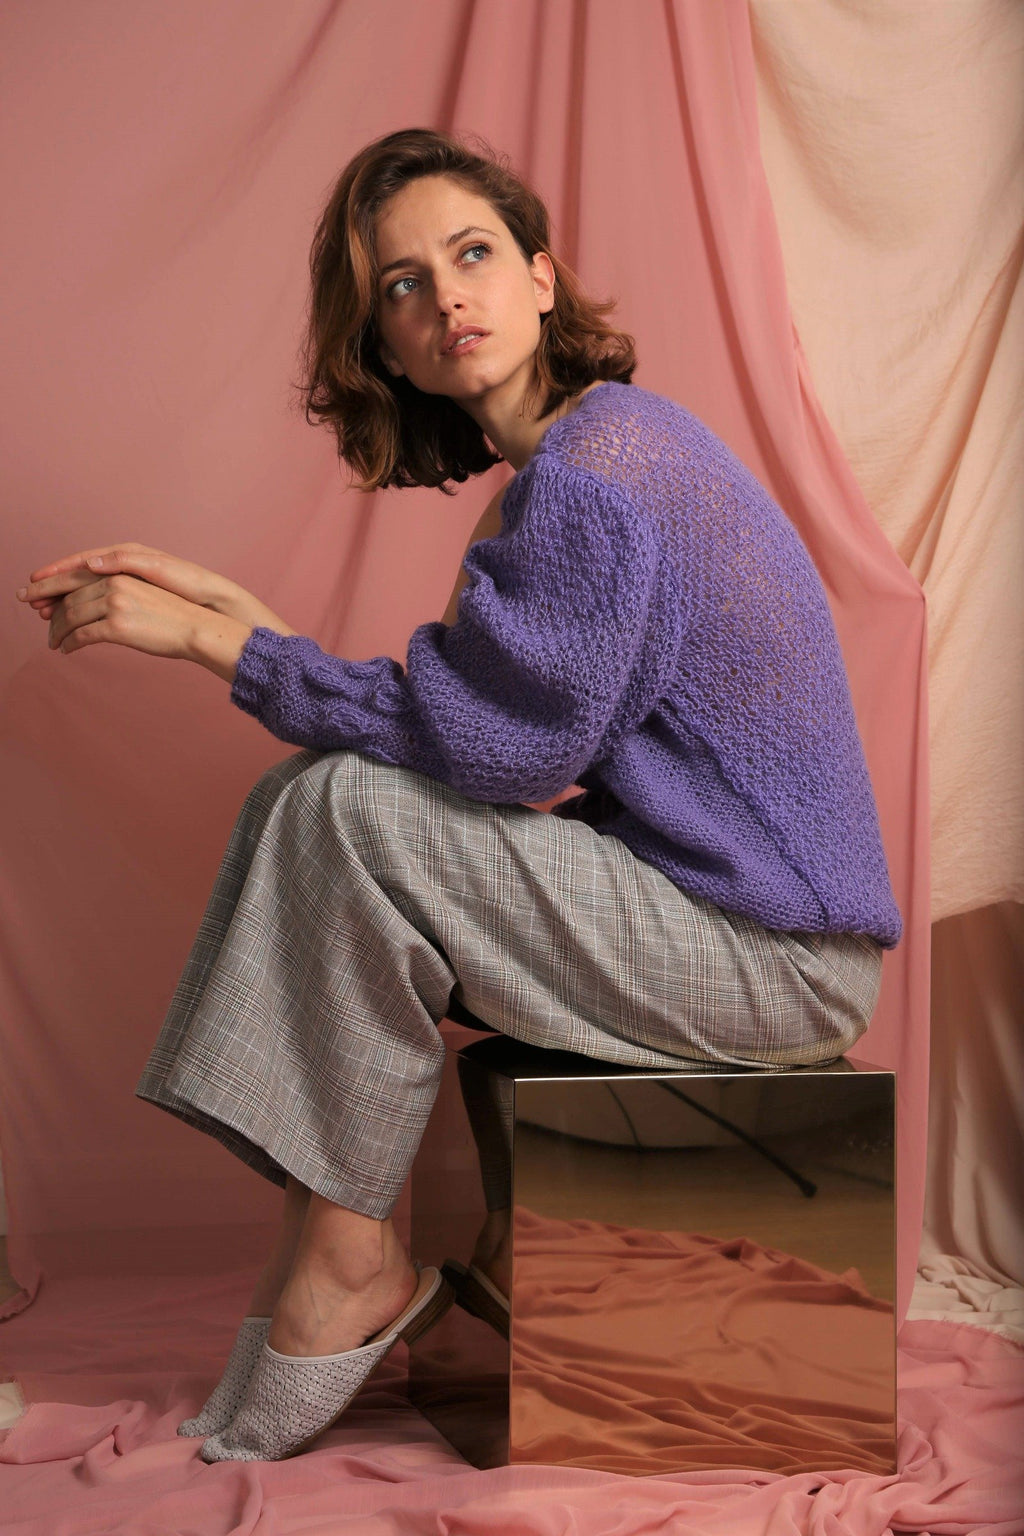 Sustainable & ethically made hand knitted sweater ?id=14824465465480